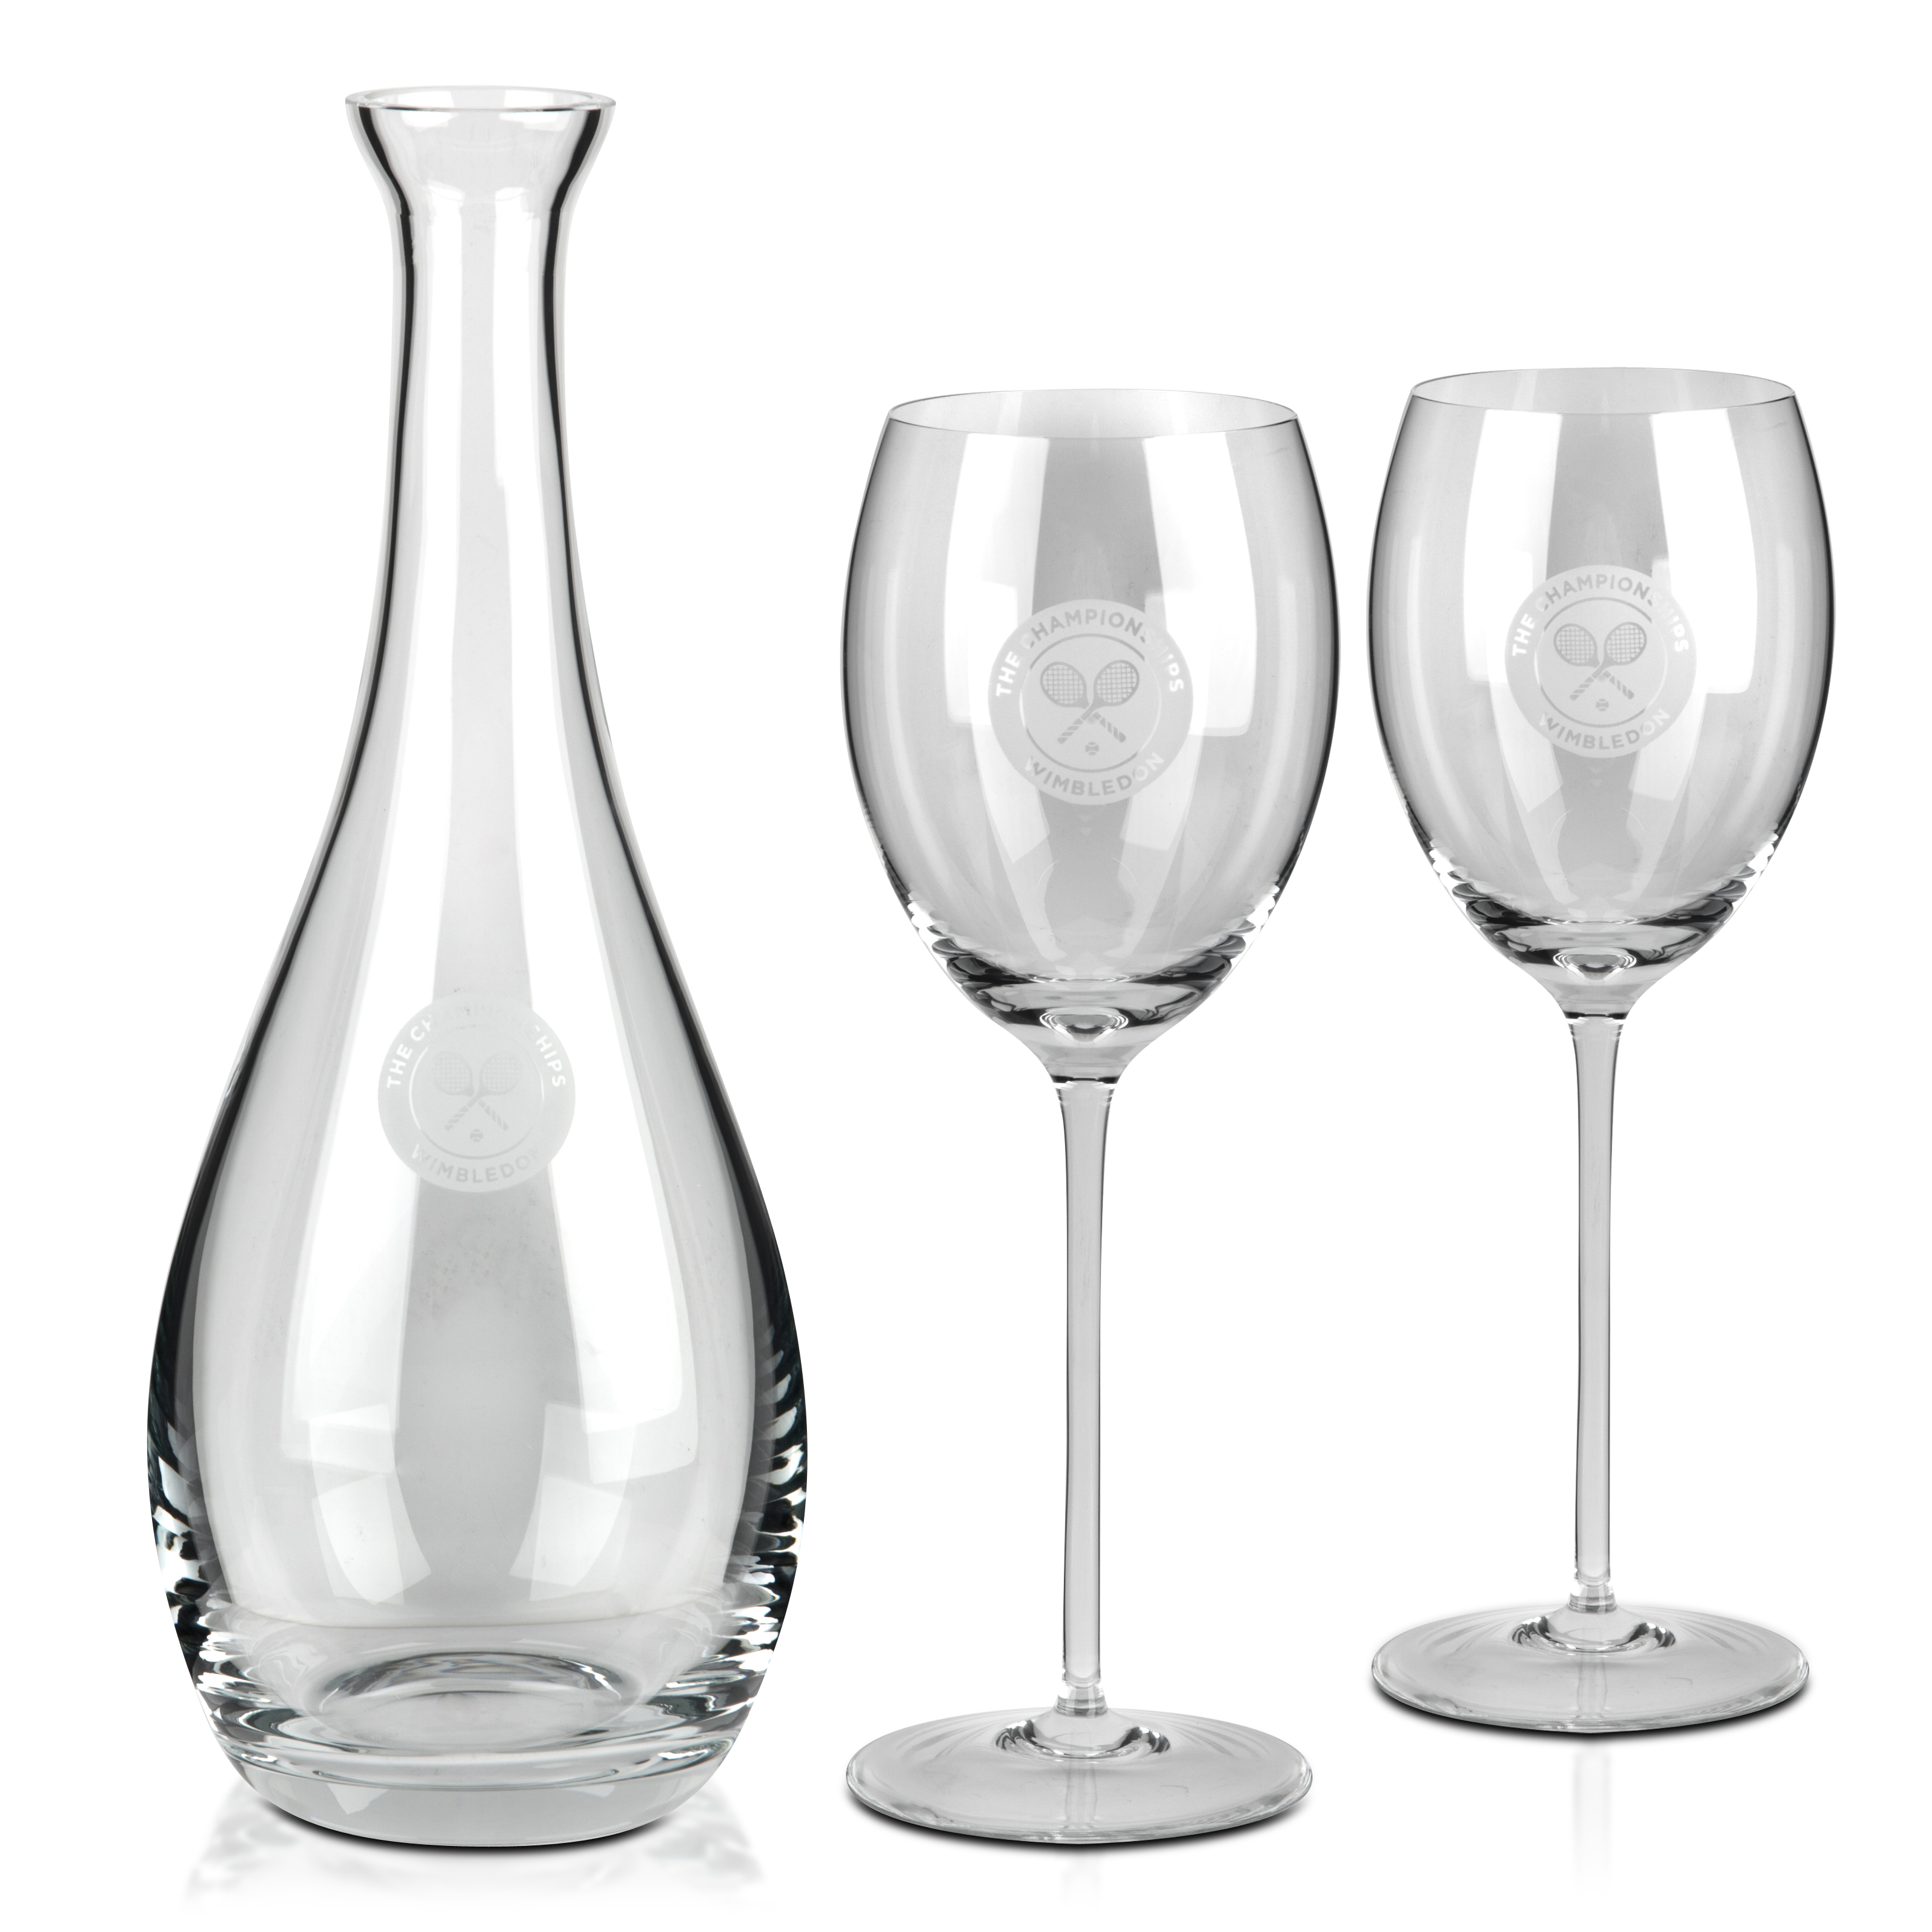 Wimbledon 2012 Crystal Decanter and Wine Set